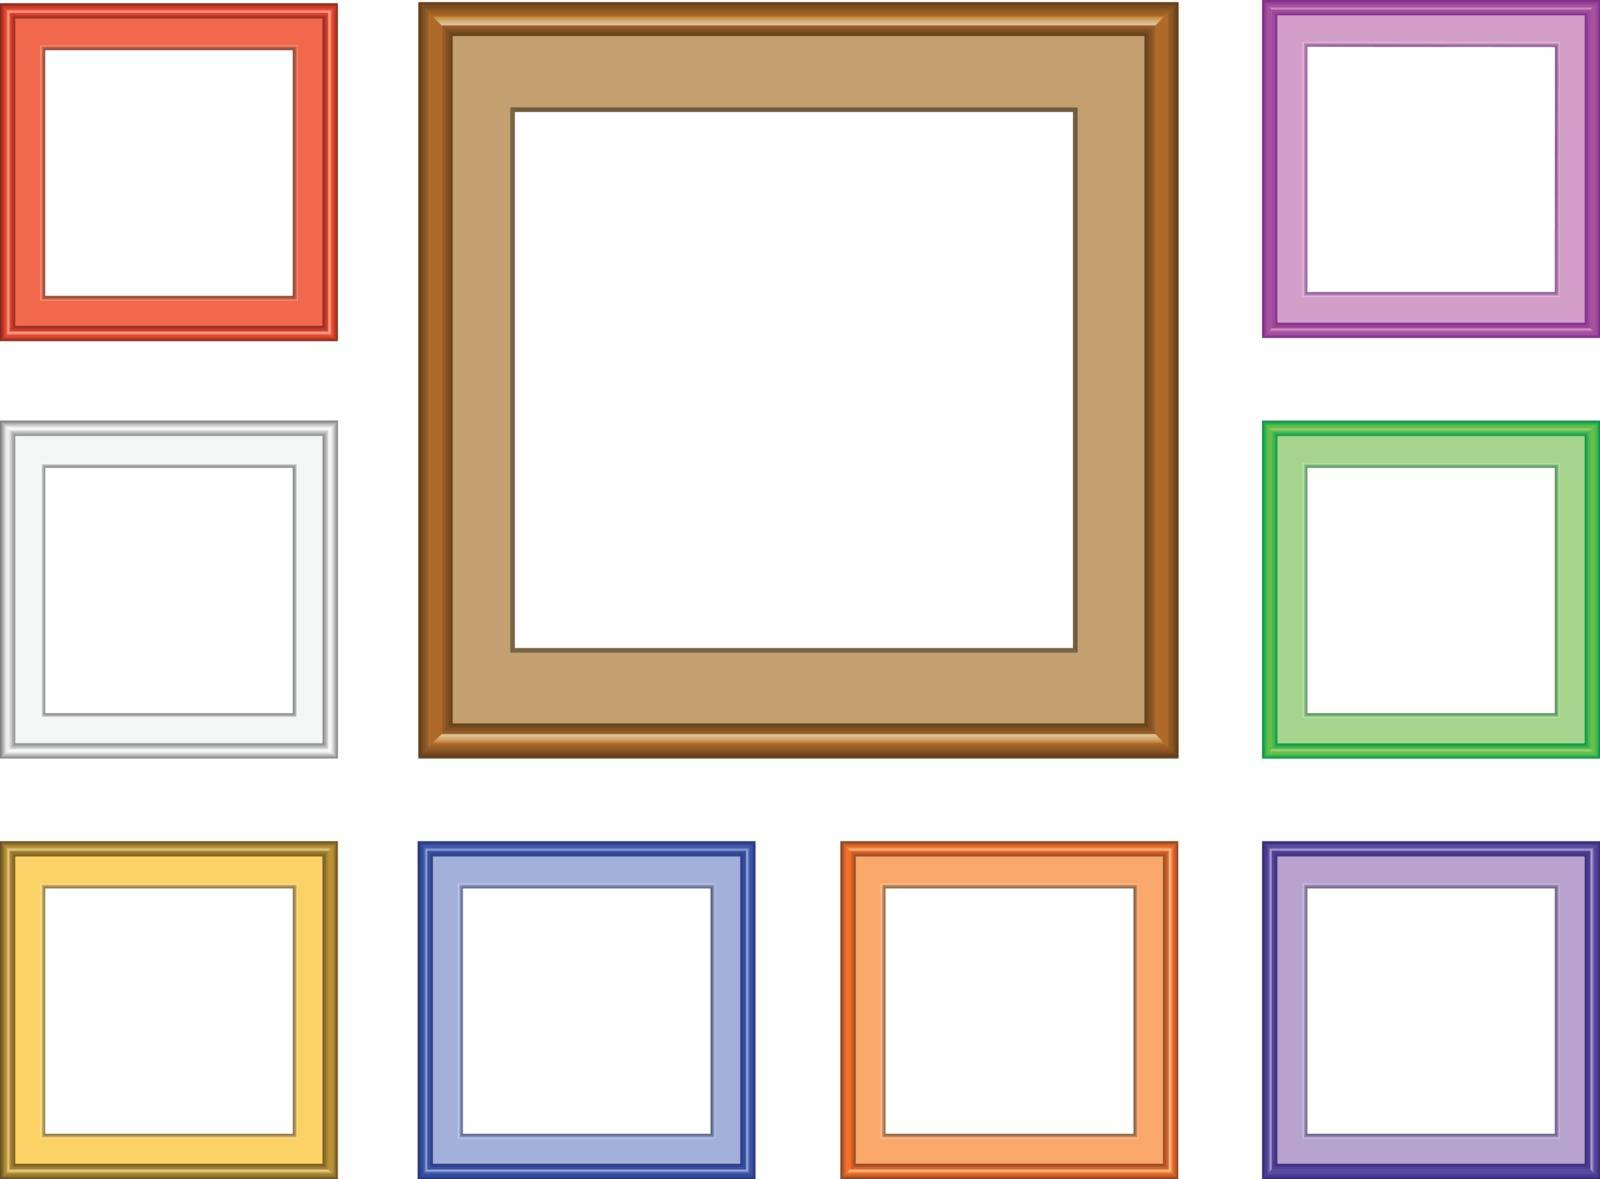 9 colorful square frames for collection image, picture, gallery or for web design